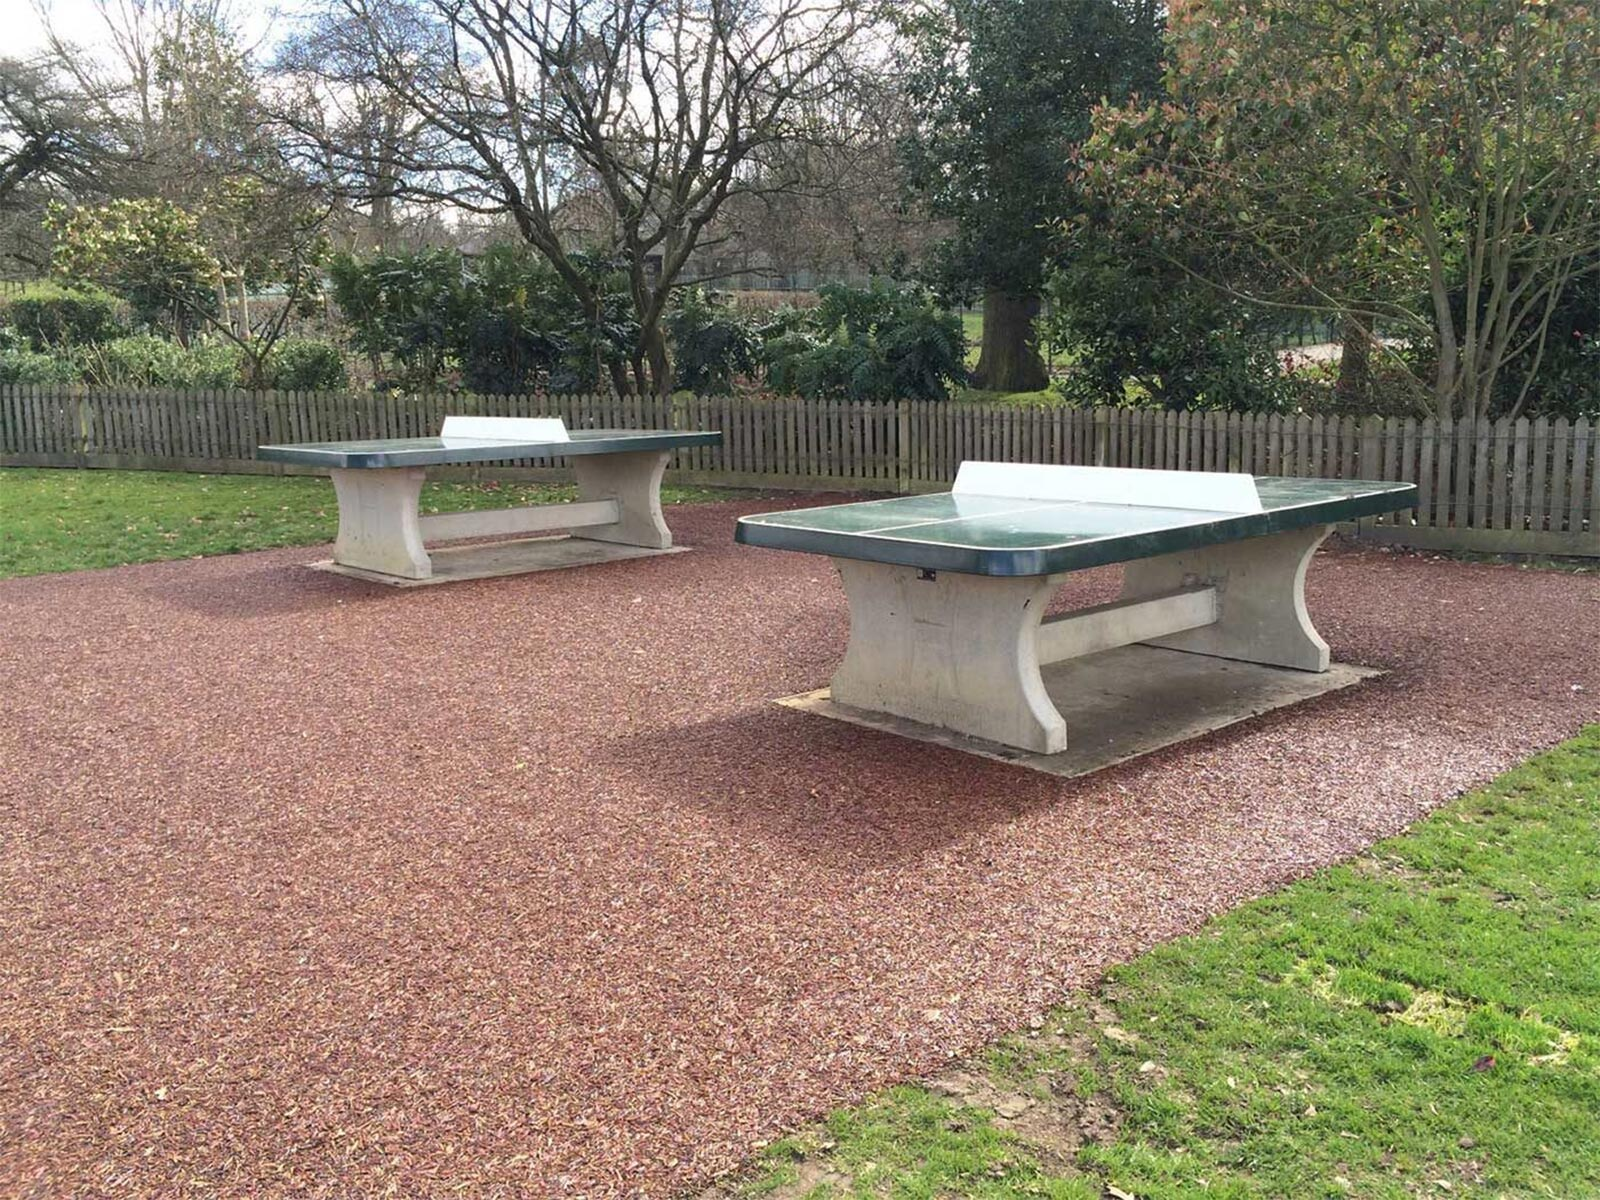 table tennis table on tiger mulch rubber surface